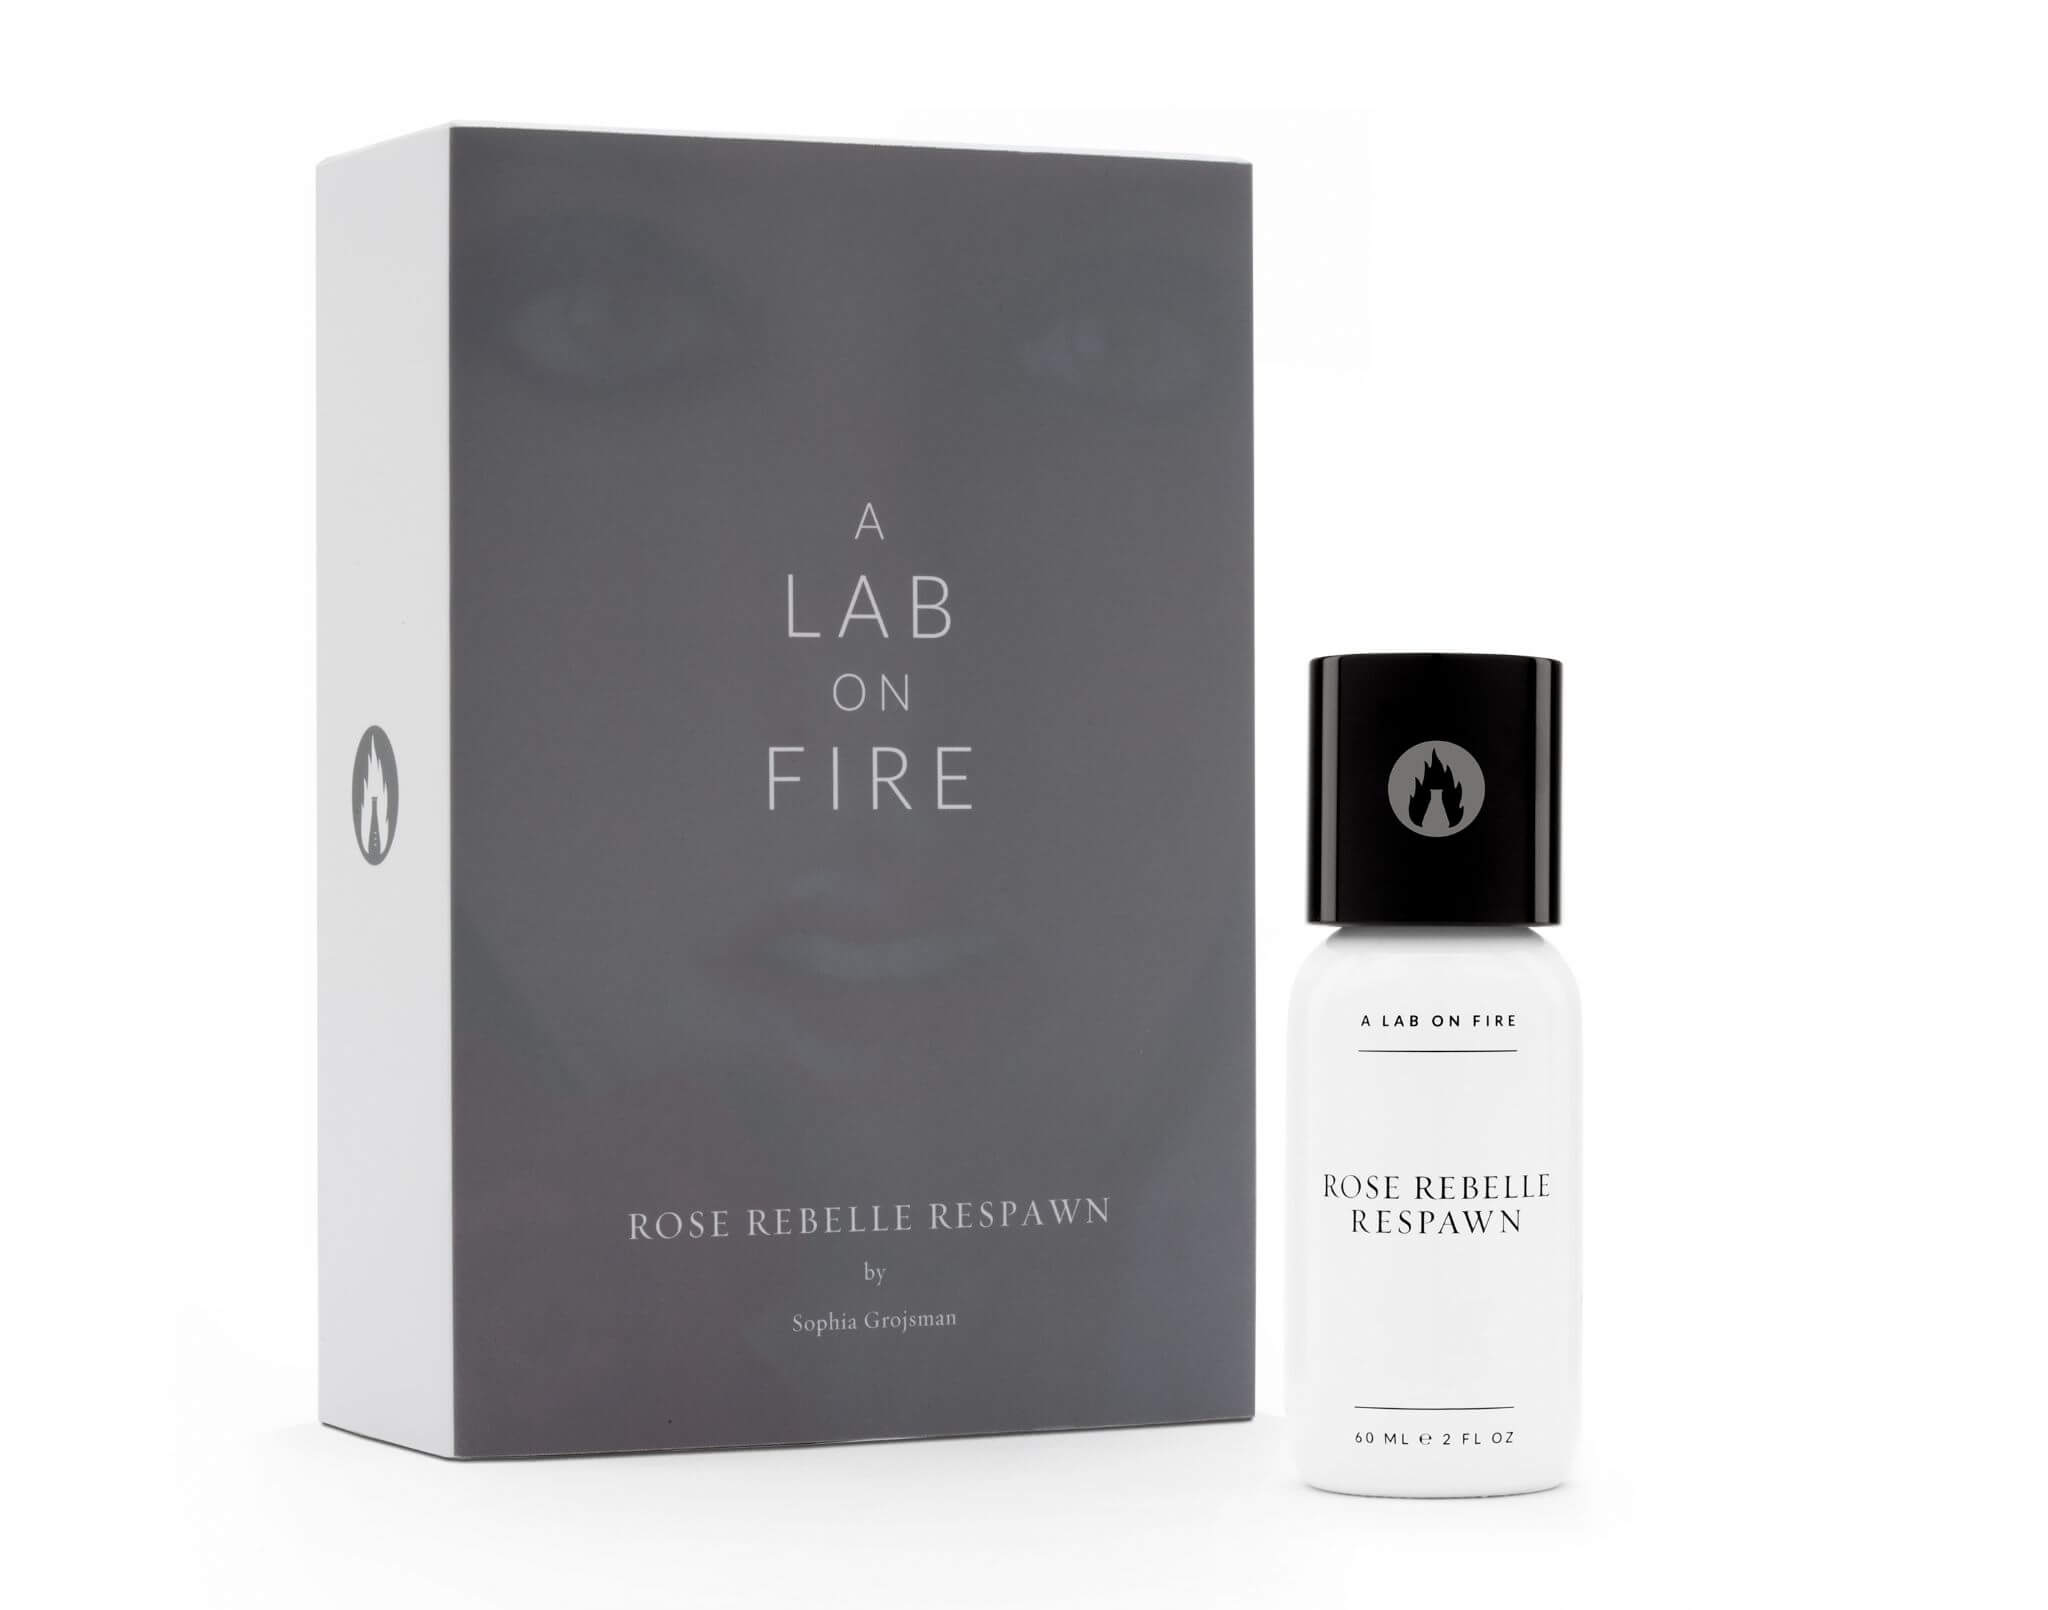 a-lab-on-fire-rose-rebelle-respawn-